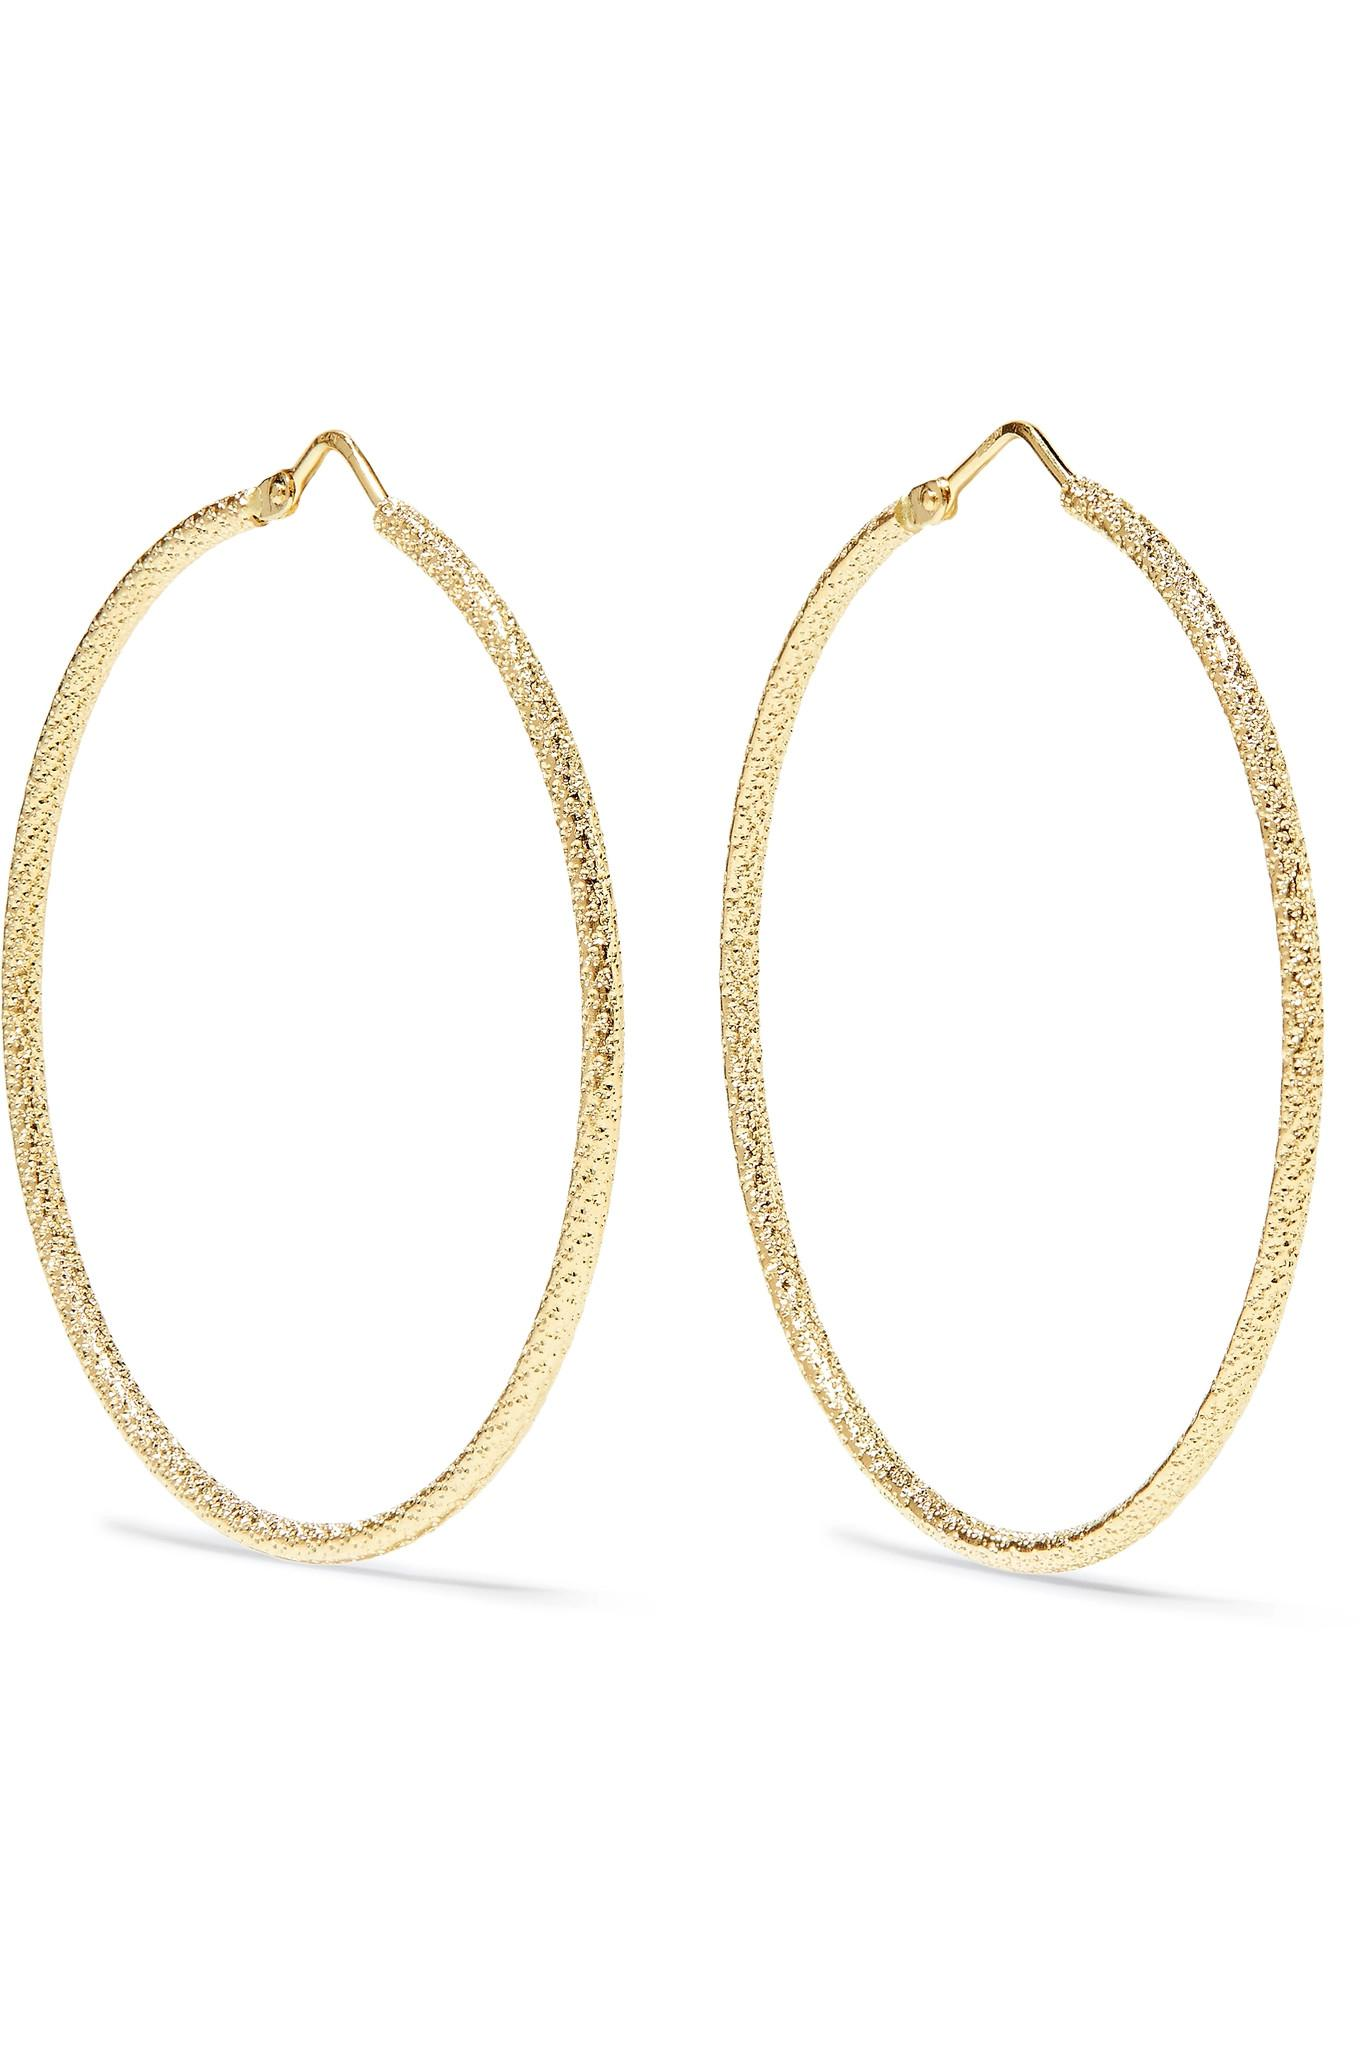 Carolina Bucci Florentine 18-karat Rose Gold Earrings SdzItqWzj